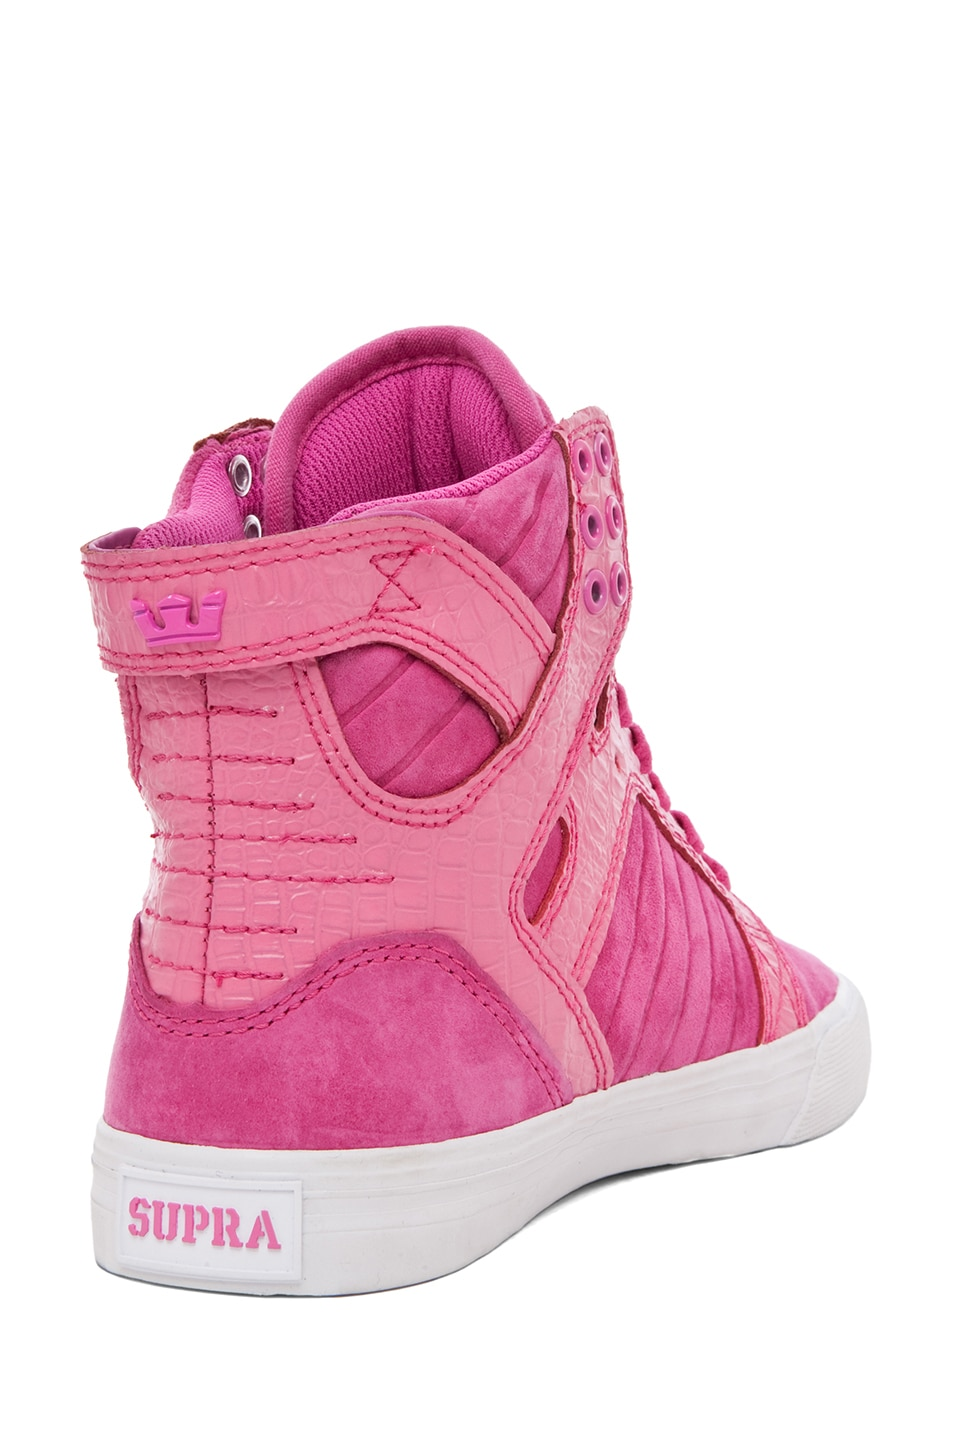 Image 3 of Supra PINK PARTY EXCLUSIVE Skytop Sneaker in Pink